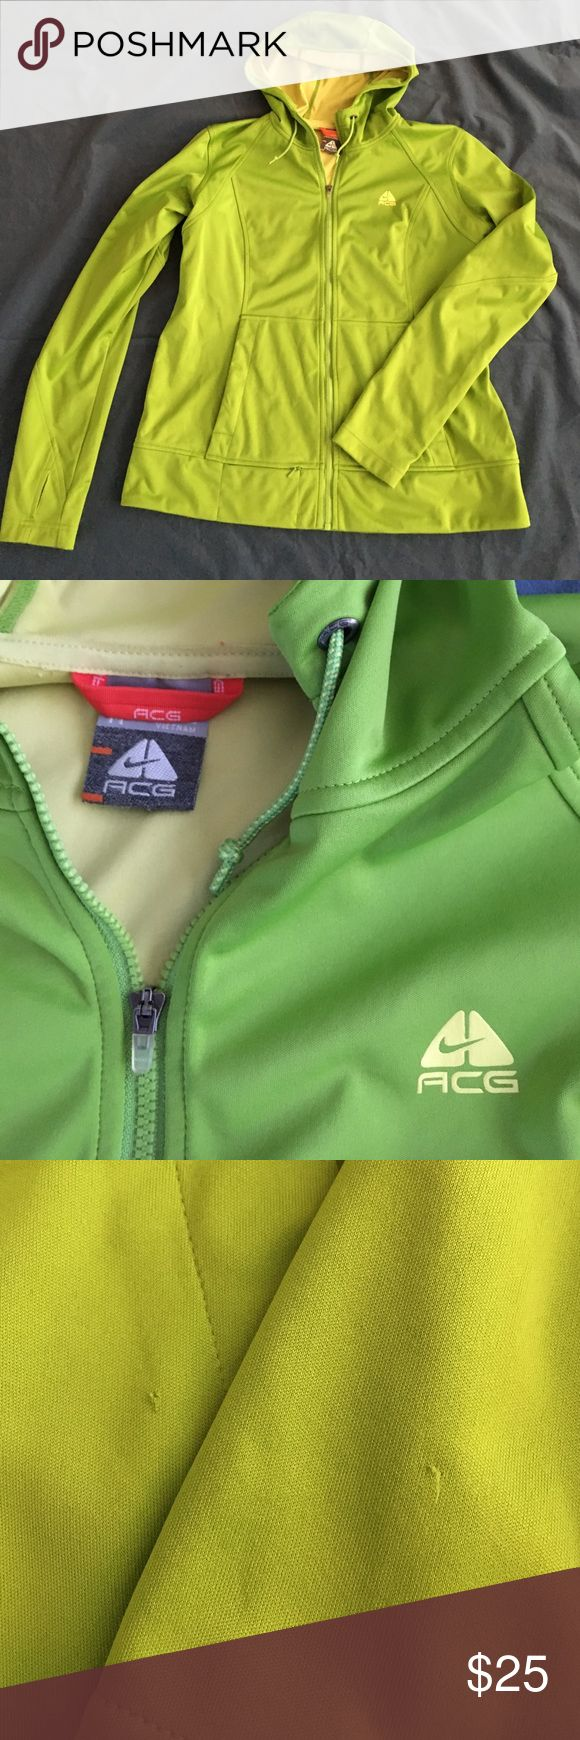 Nike ACG Jacket GUC. Awesome lightweight hooded jacket. Lime green with yellow inside. Zips. Thumb holes. Pockets on the front as well as a small zipper pocket. Only issues I could see are a small pic on the sleeve and tiny hole on the pocket. Size medium. Nike Jackets & Coats